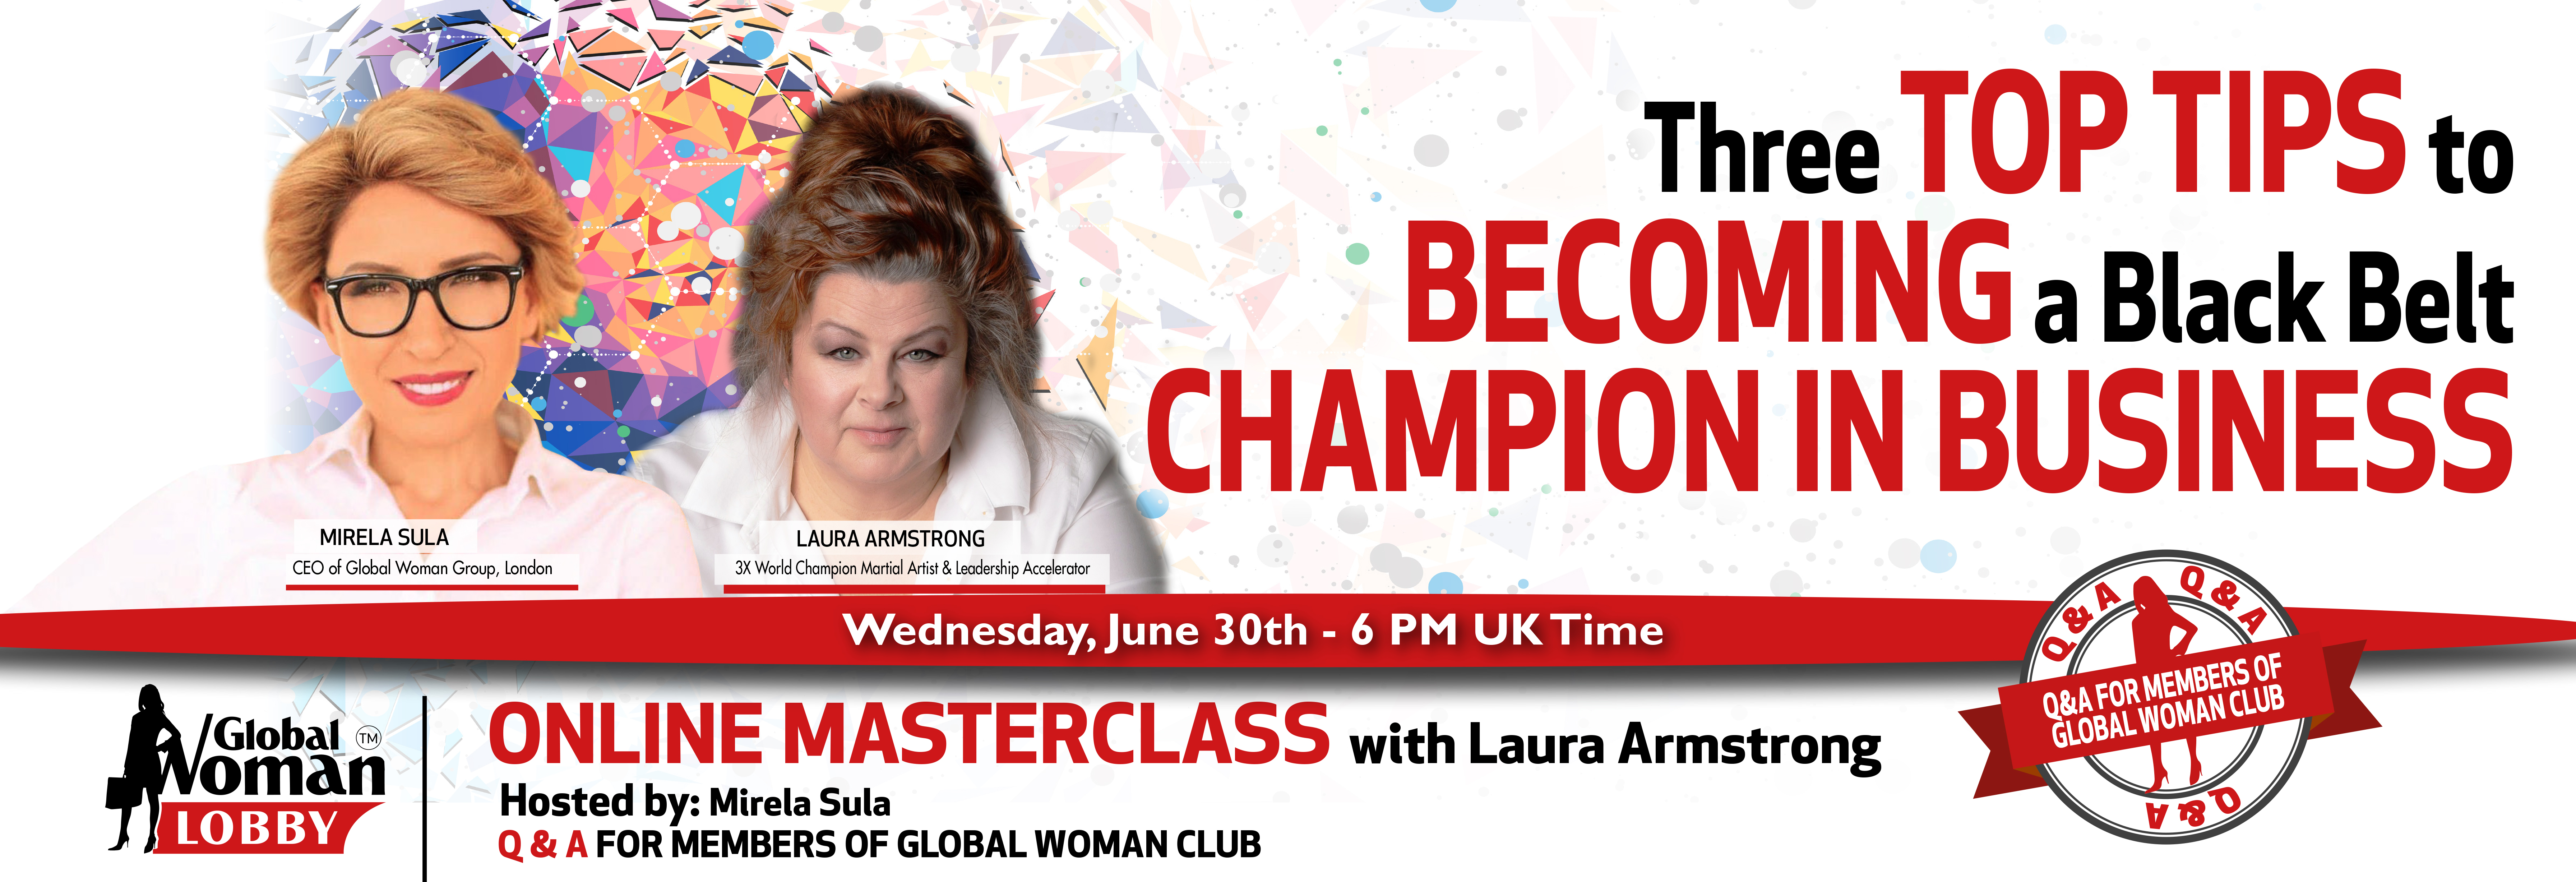 Online Masterclass with Laura Armstrong